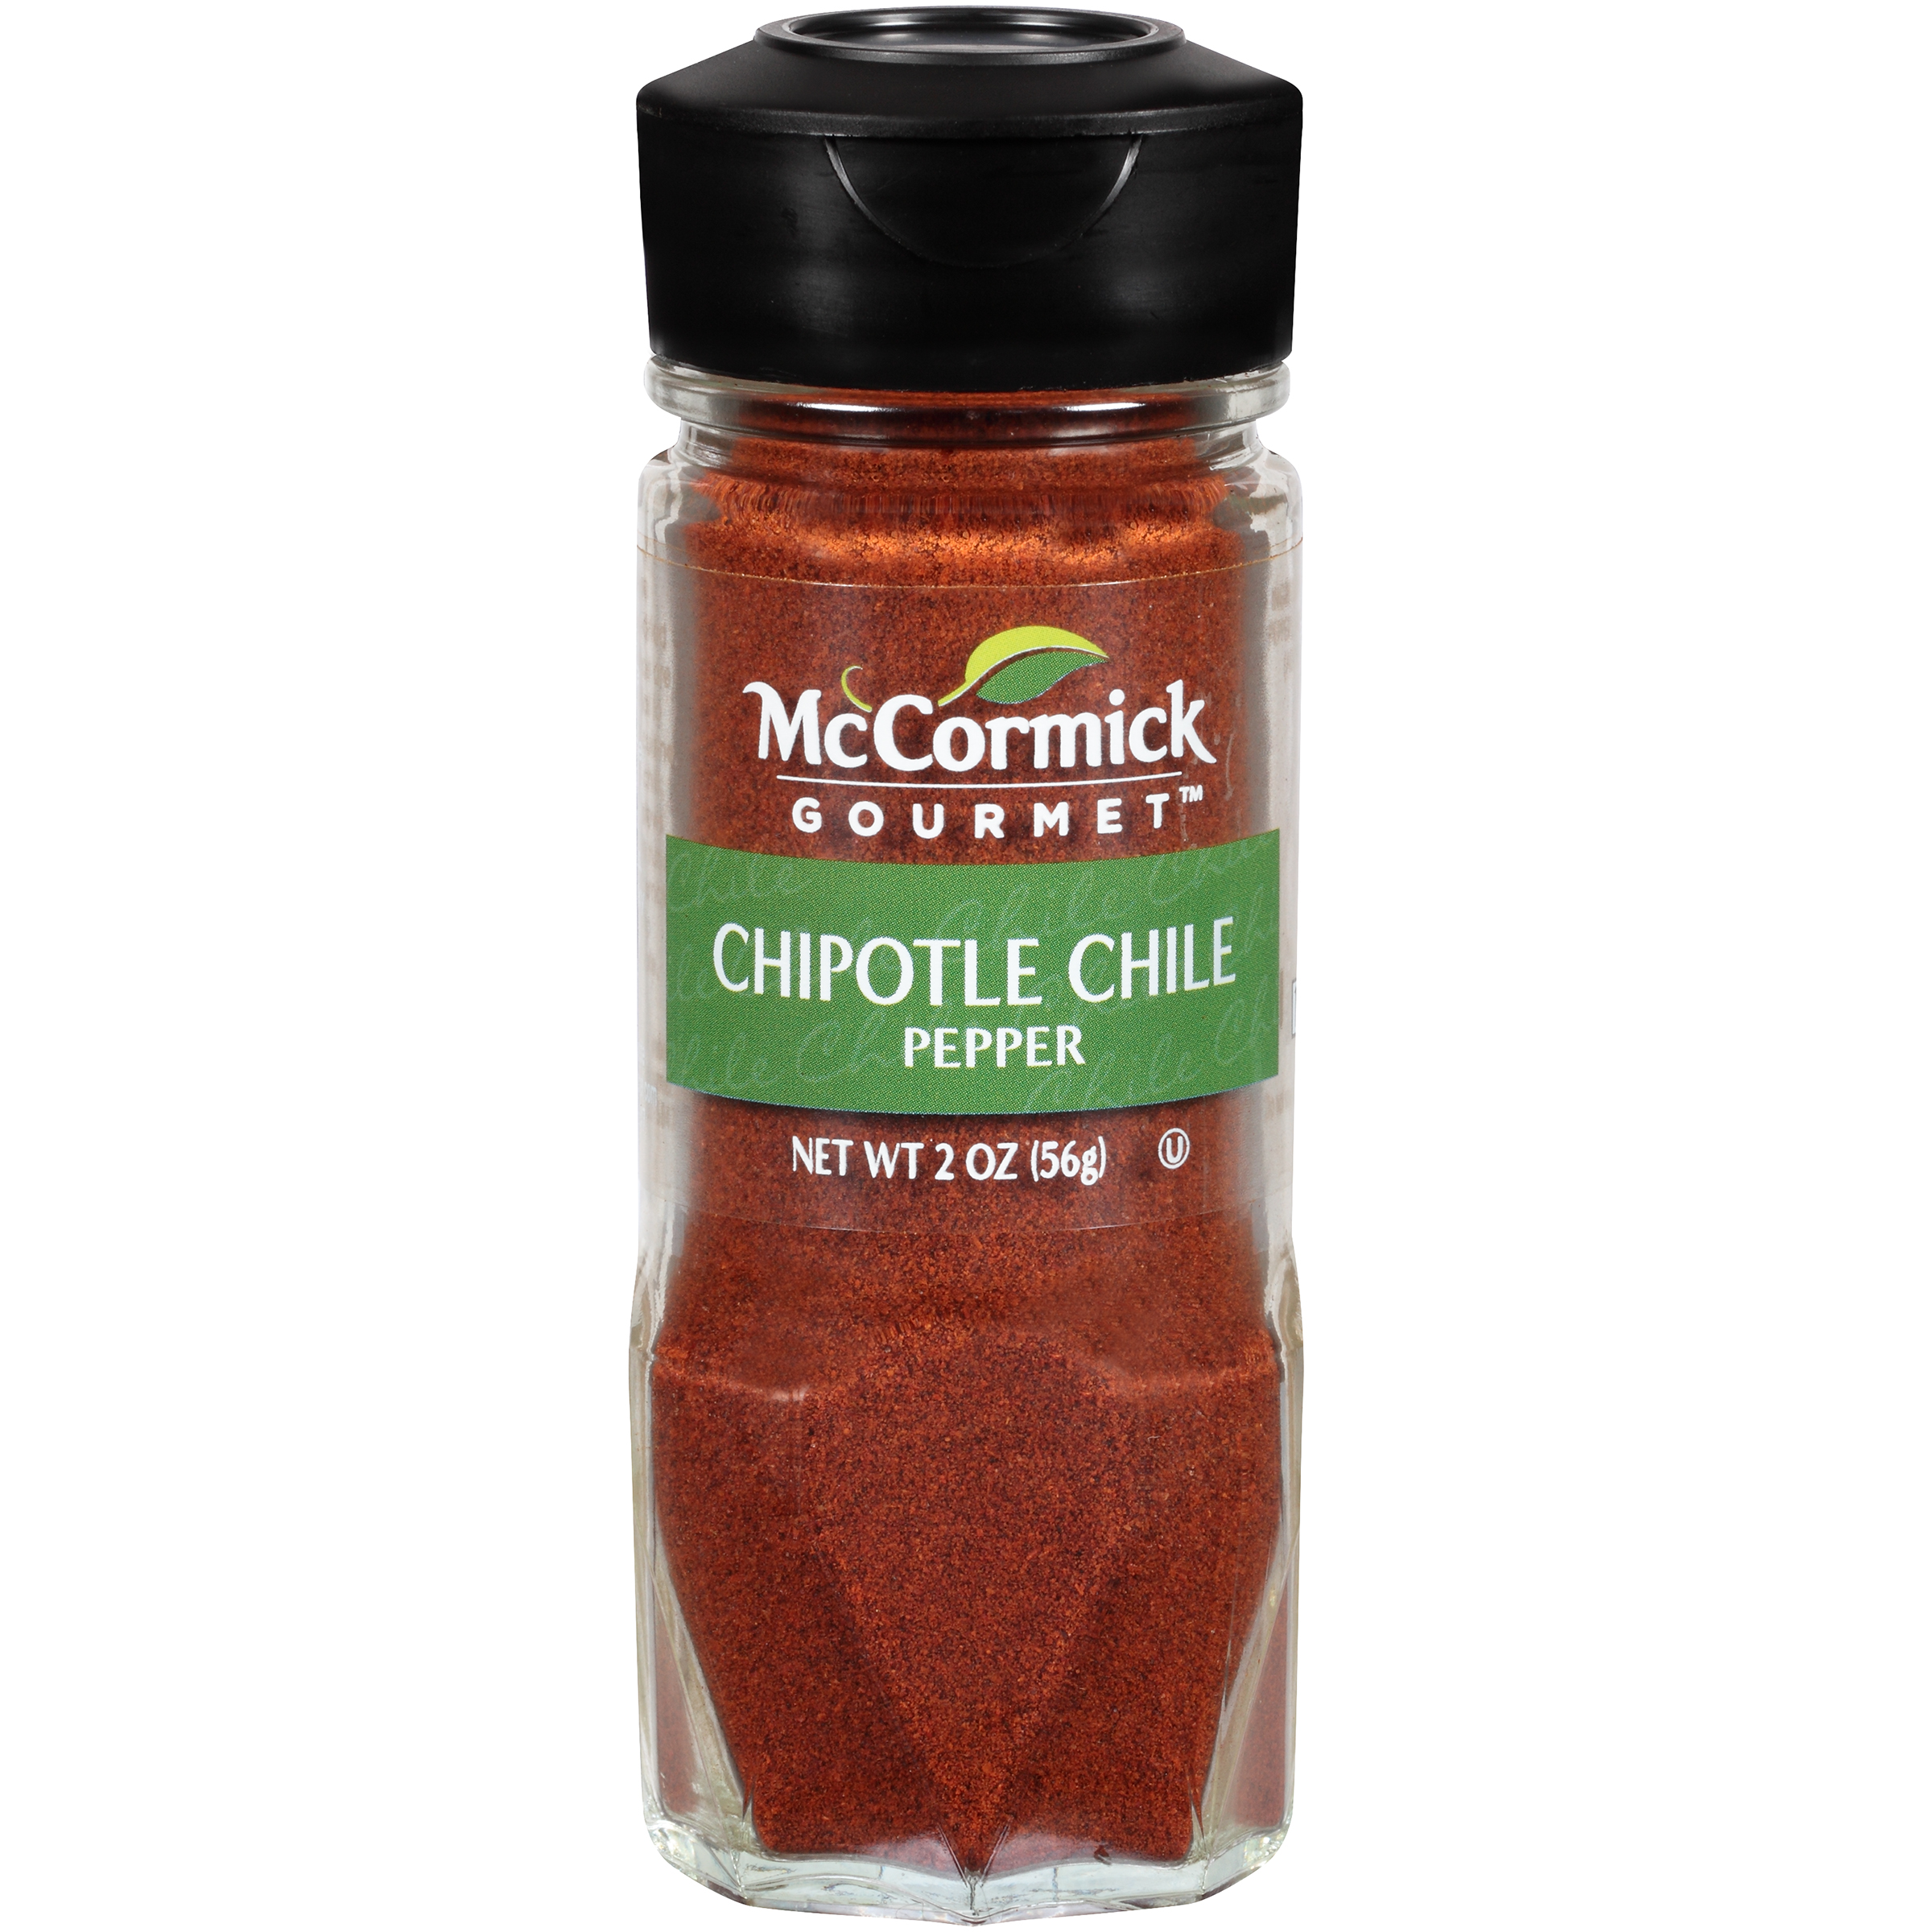 McCormick Gourmet Herbs Chile Pepper Chipotle, 2 oz by McCormick & Co., Inc.